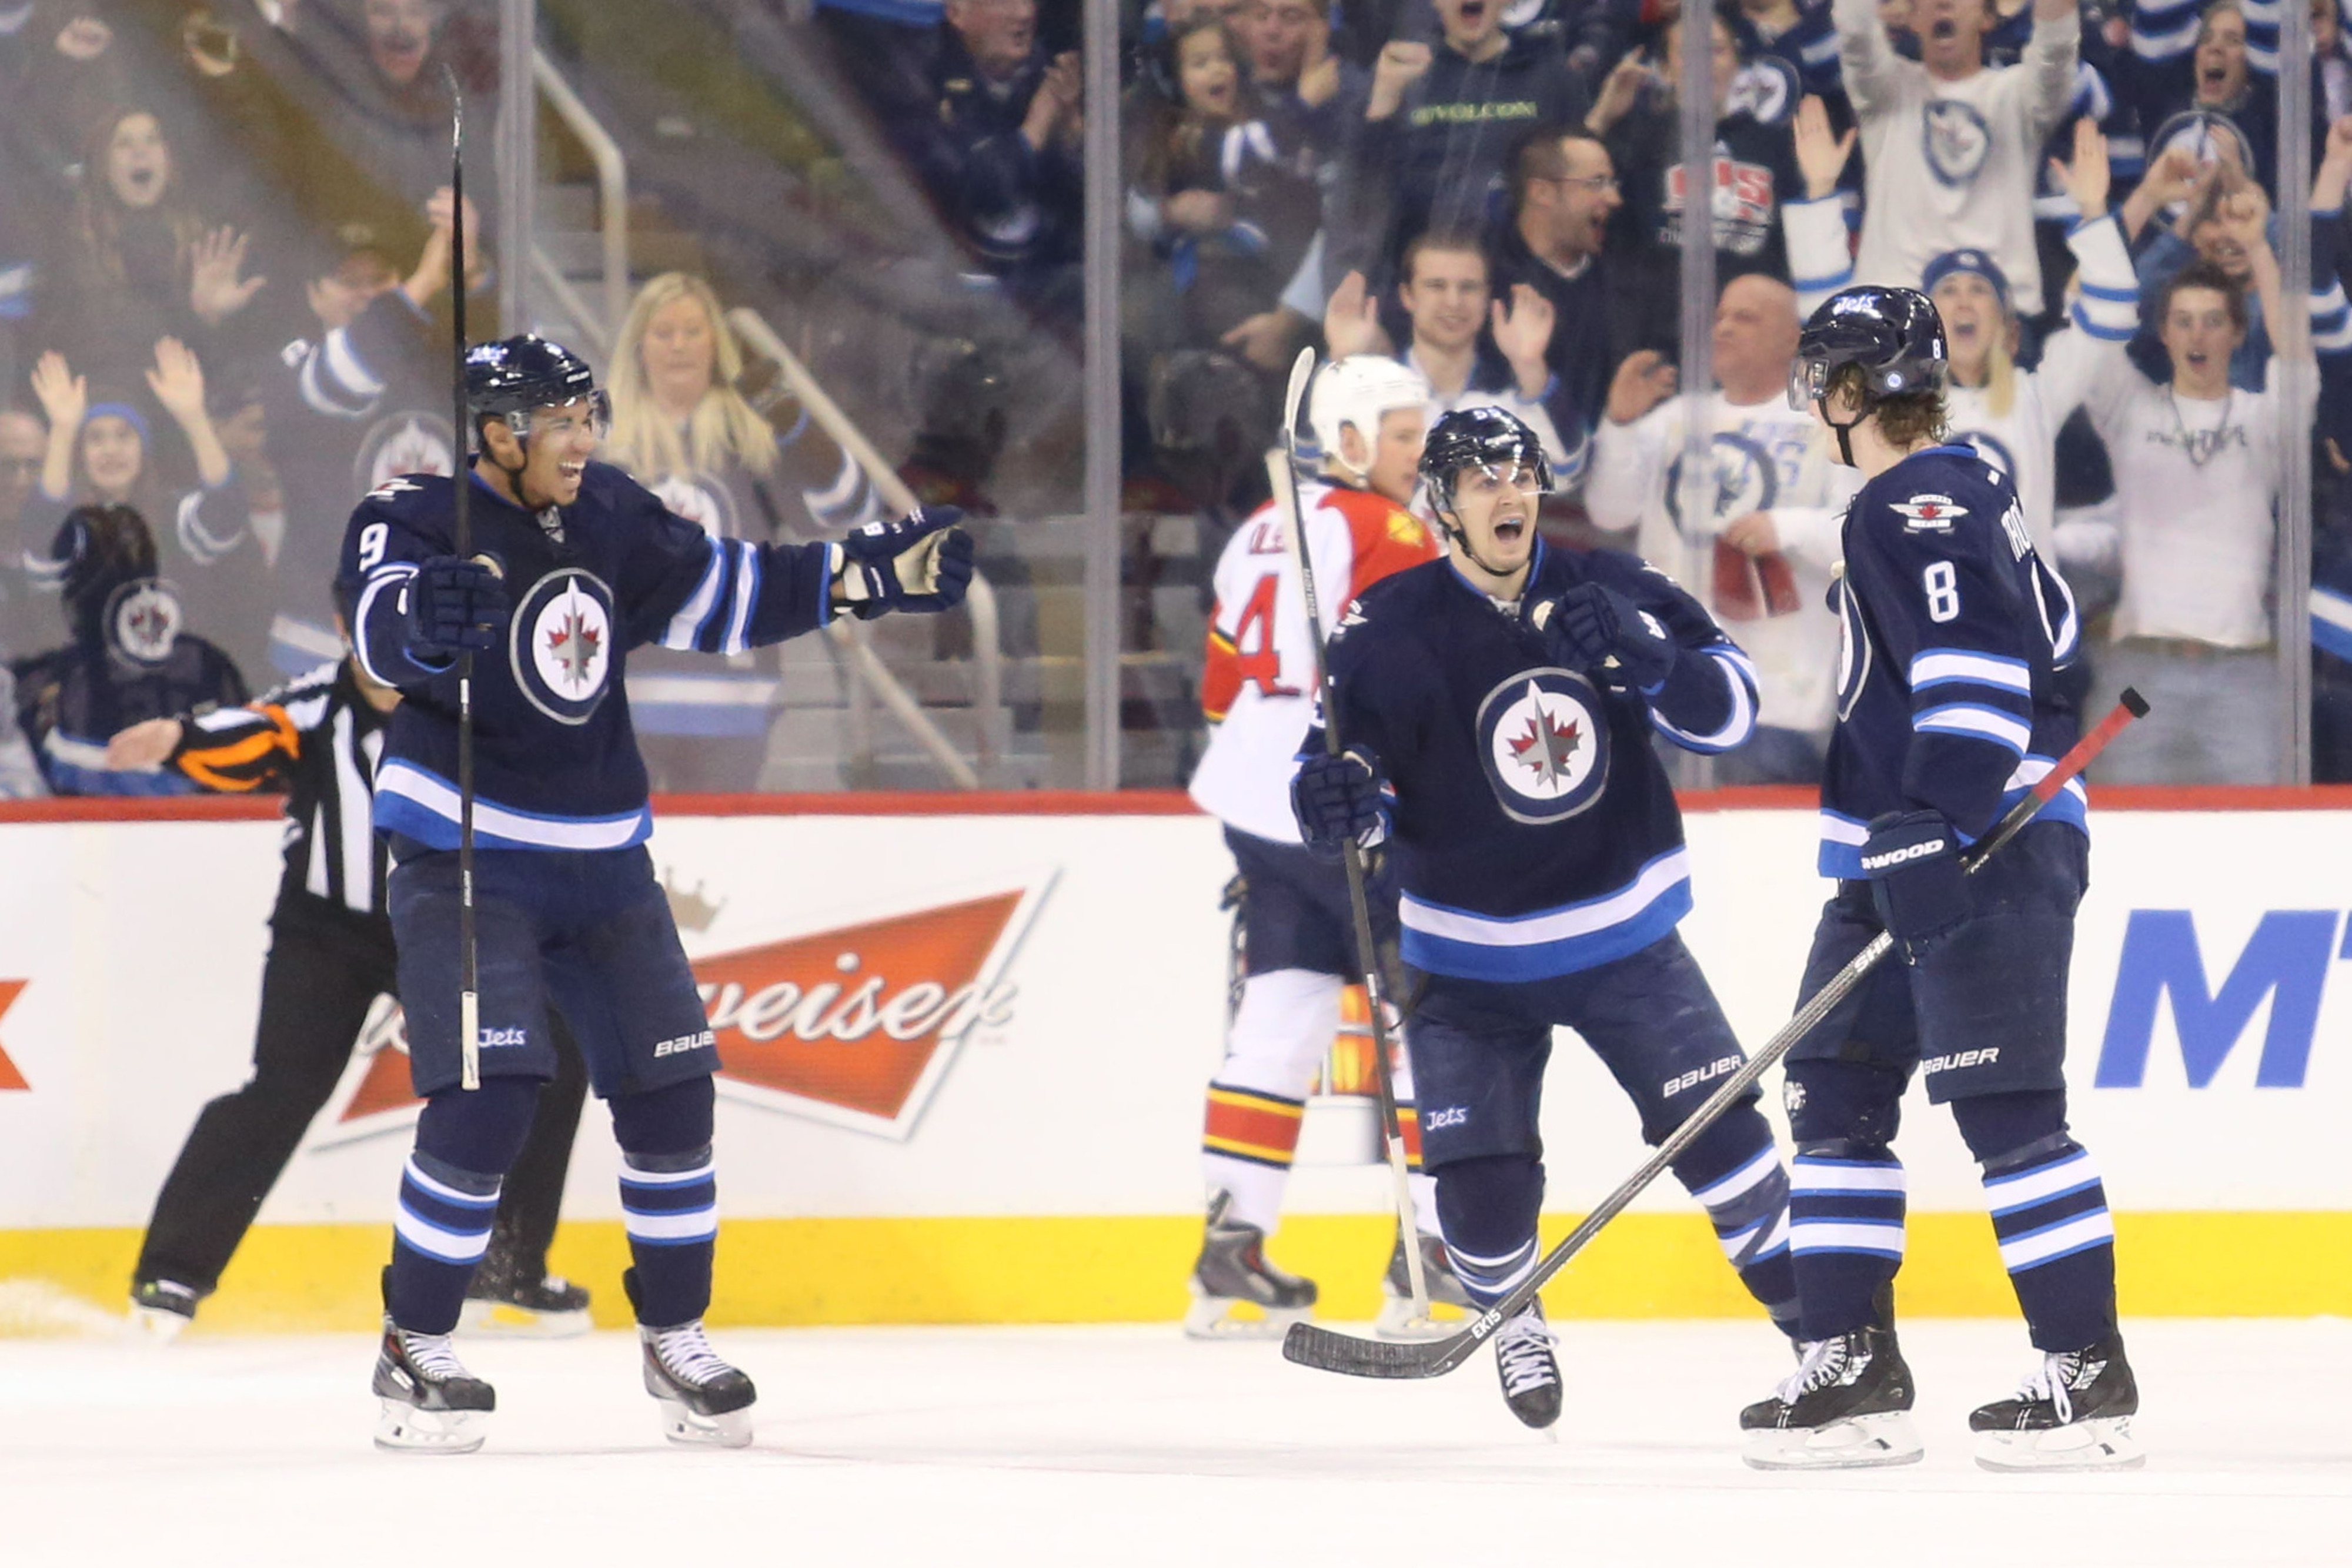 Kane, Scheifele and Trouba celebrate the Jets' first goal of the game.